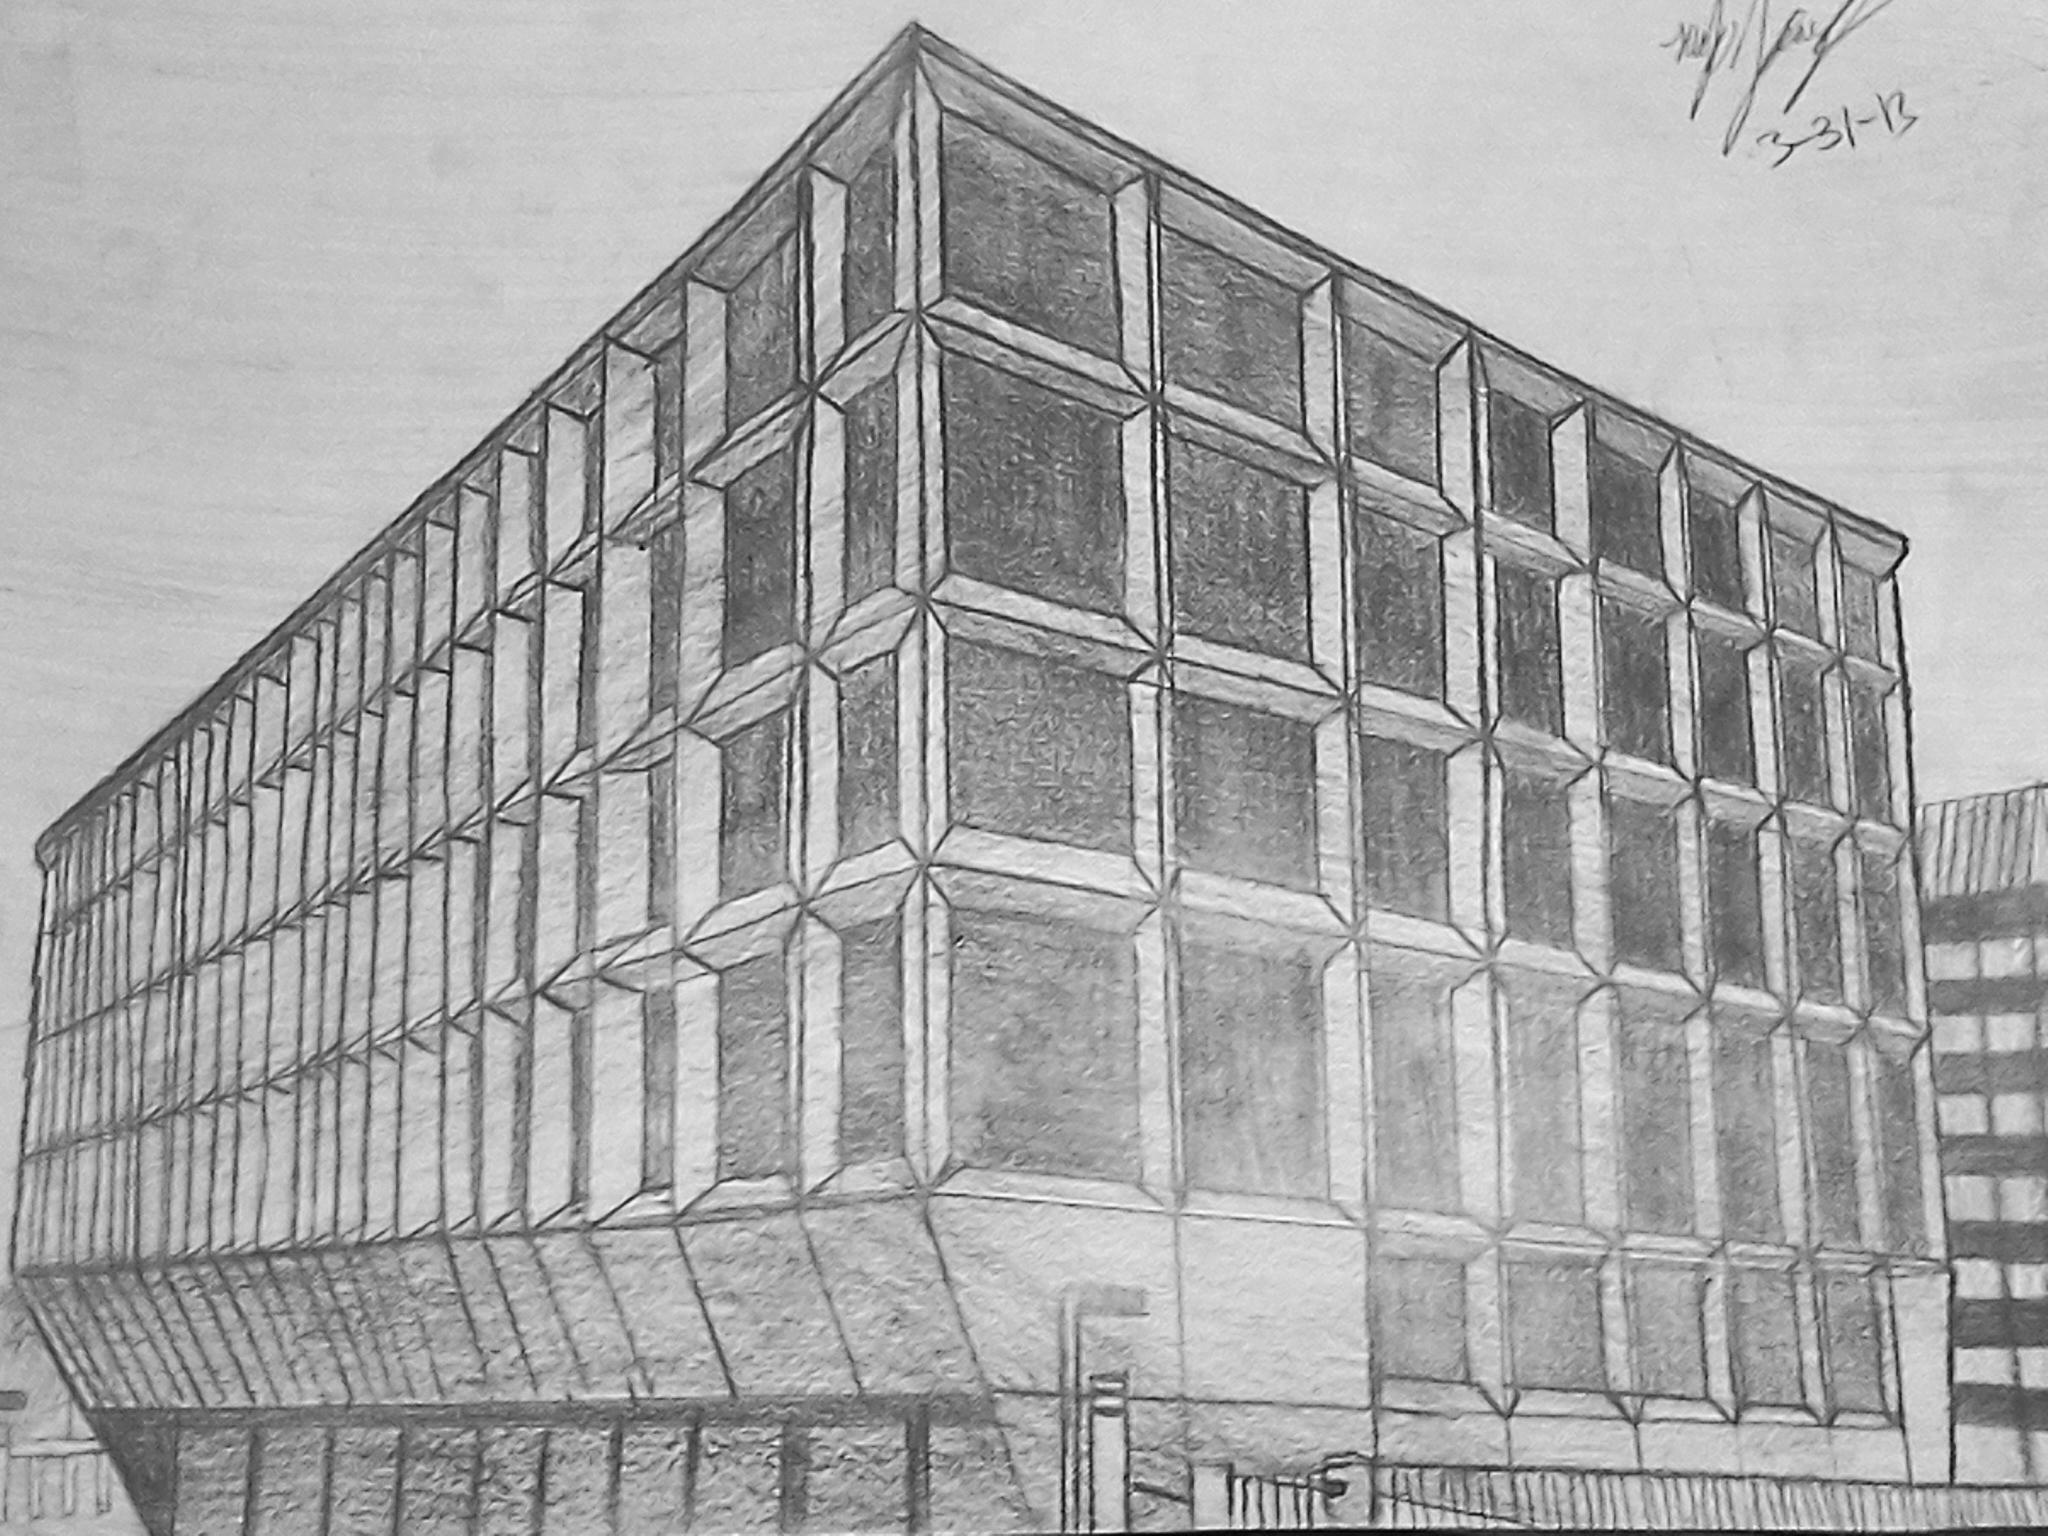 Perspective Drawings Of Buildings Pictures To Pin On